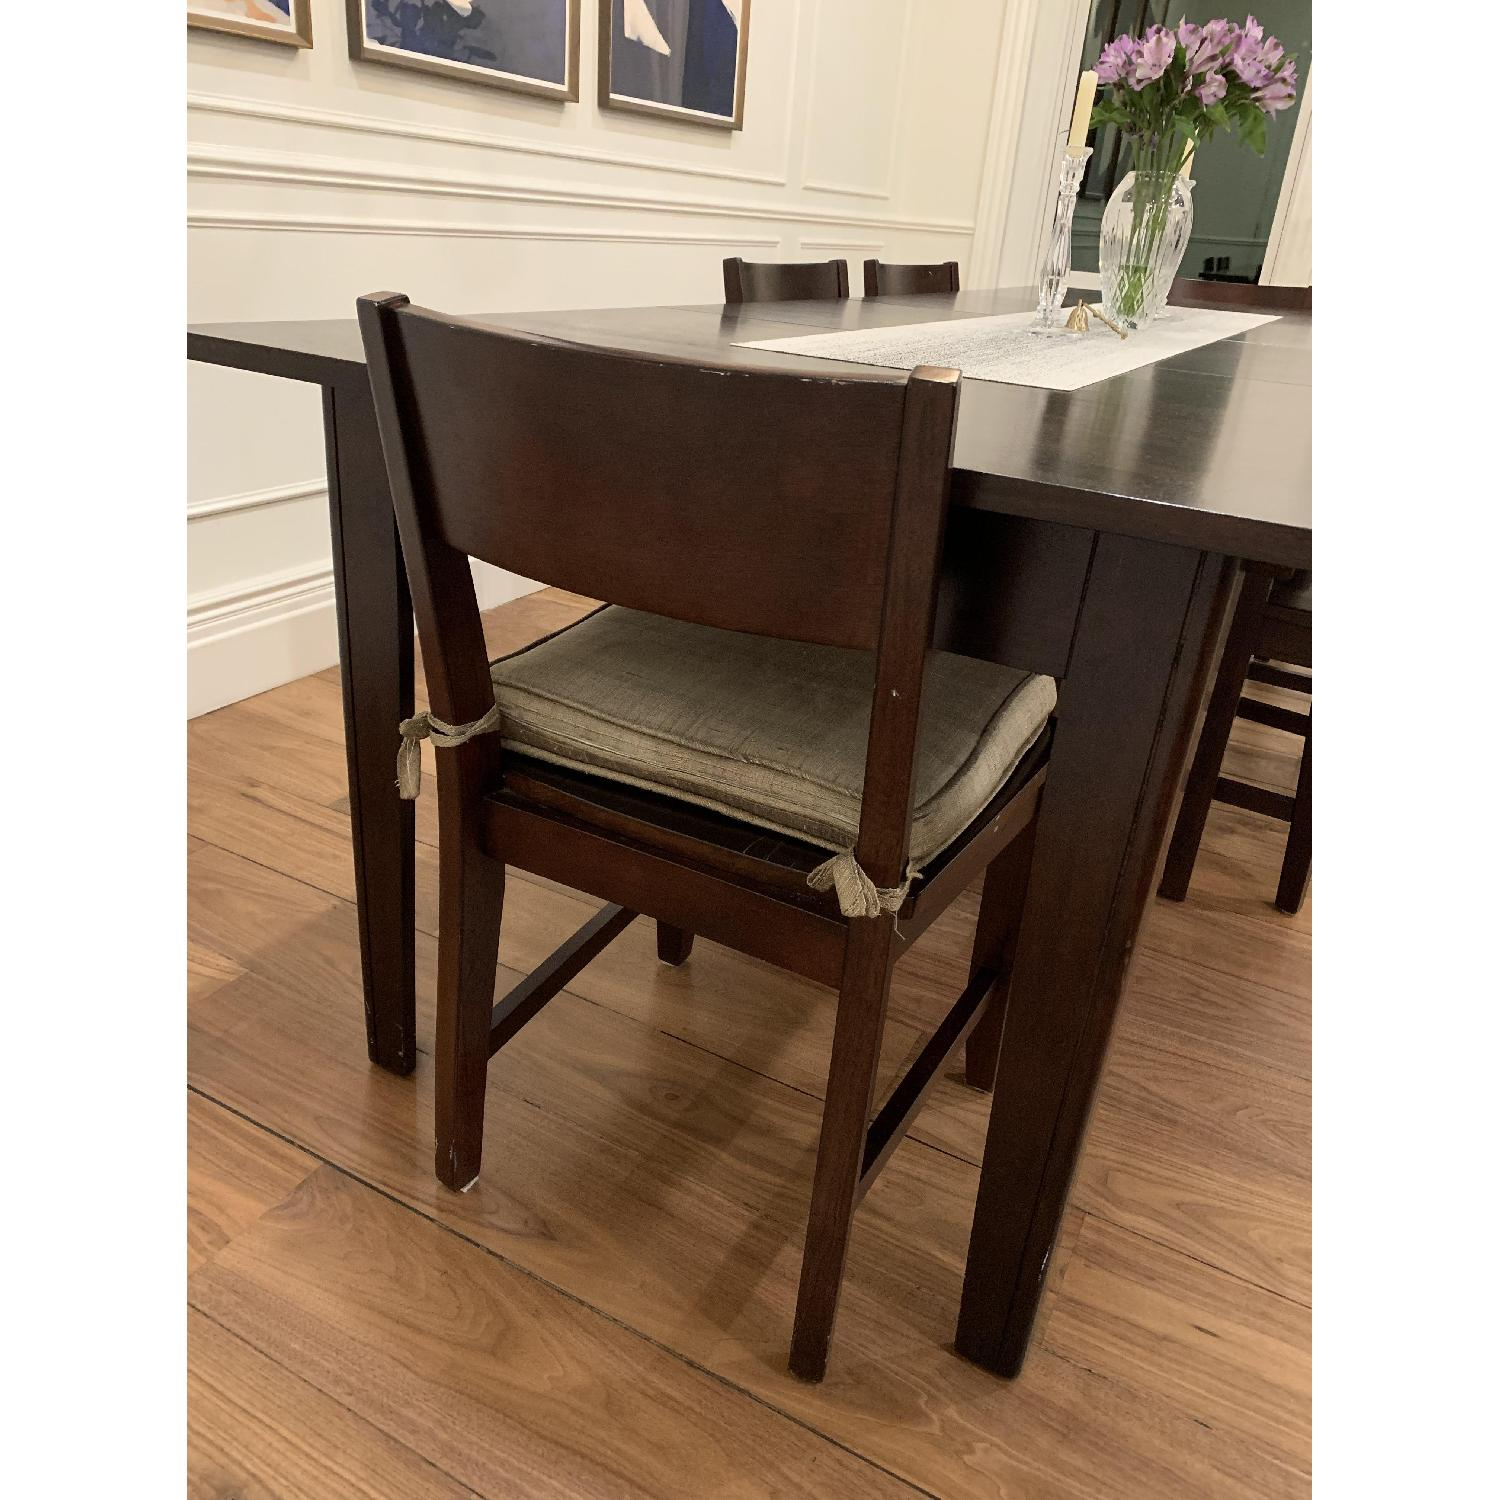 Montreal Espresso Wood Chairs - image-12